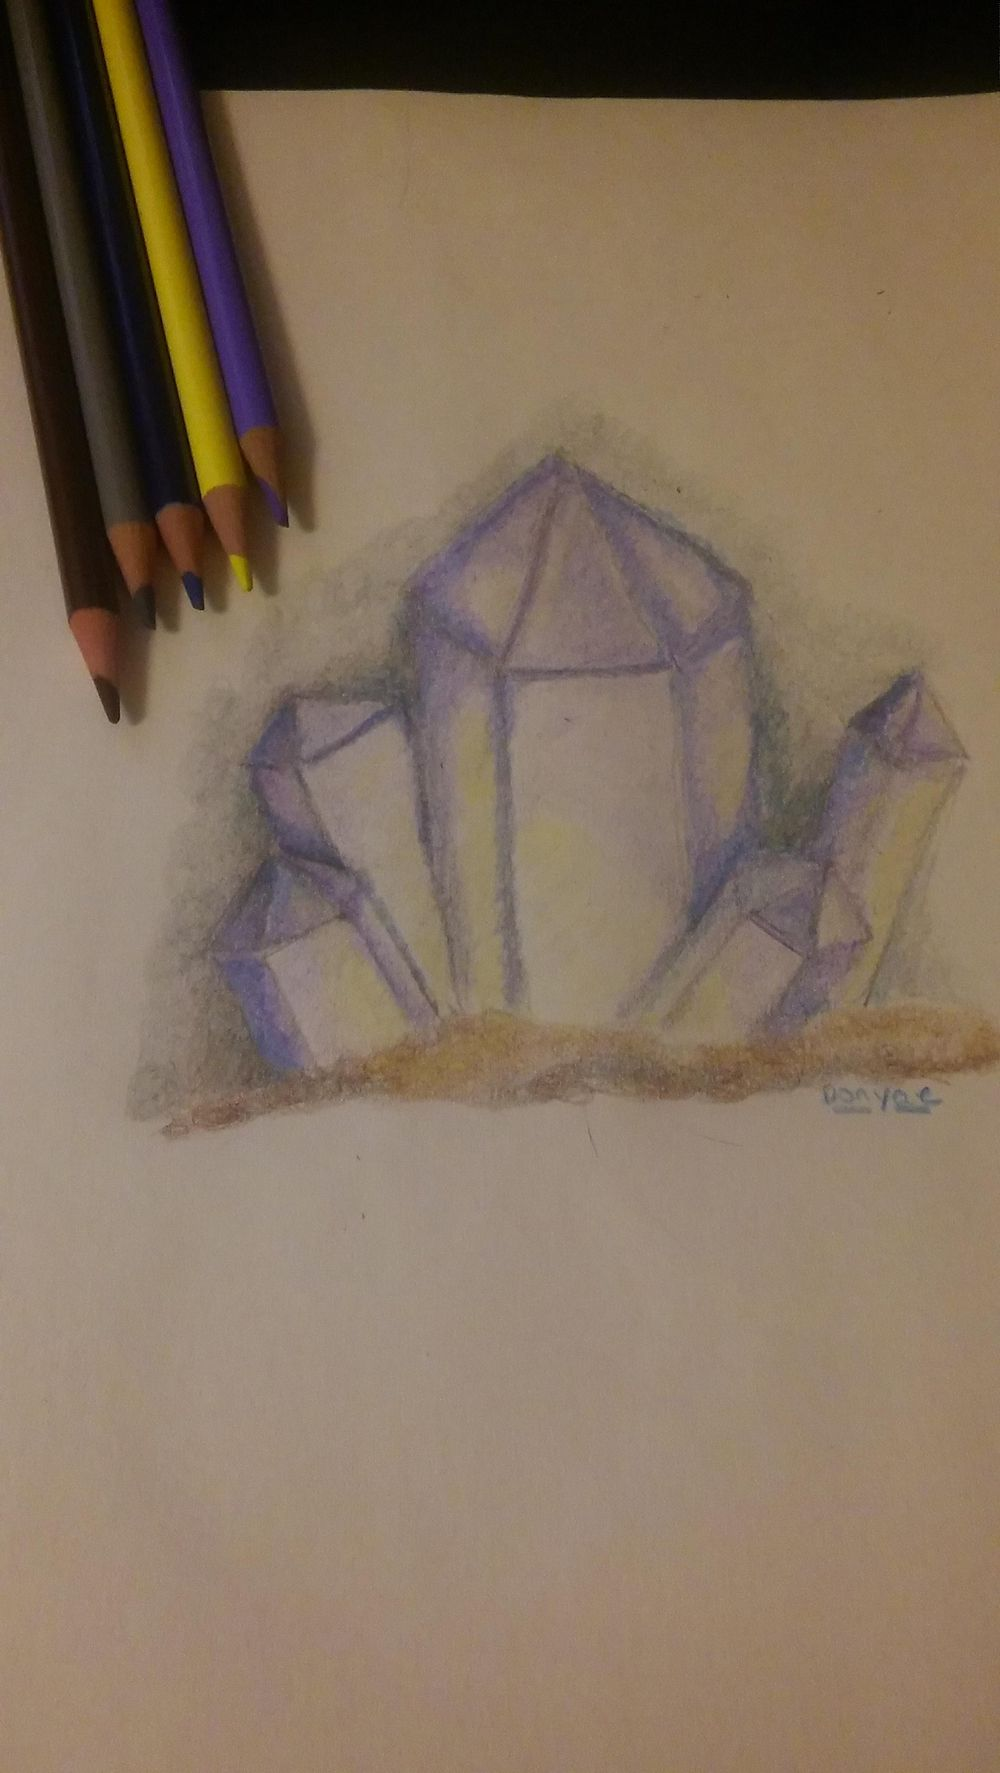 Just Colored Pencil Things - image 2 - student project